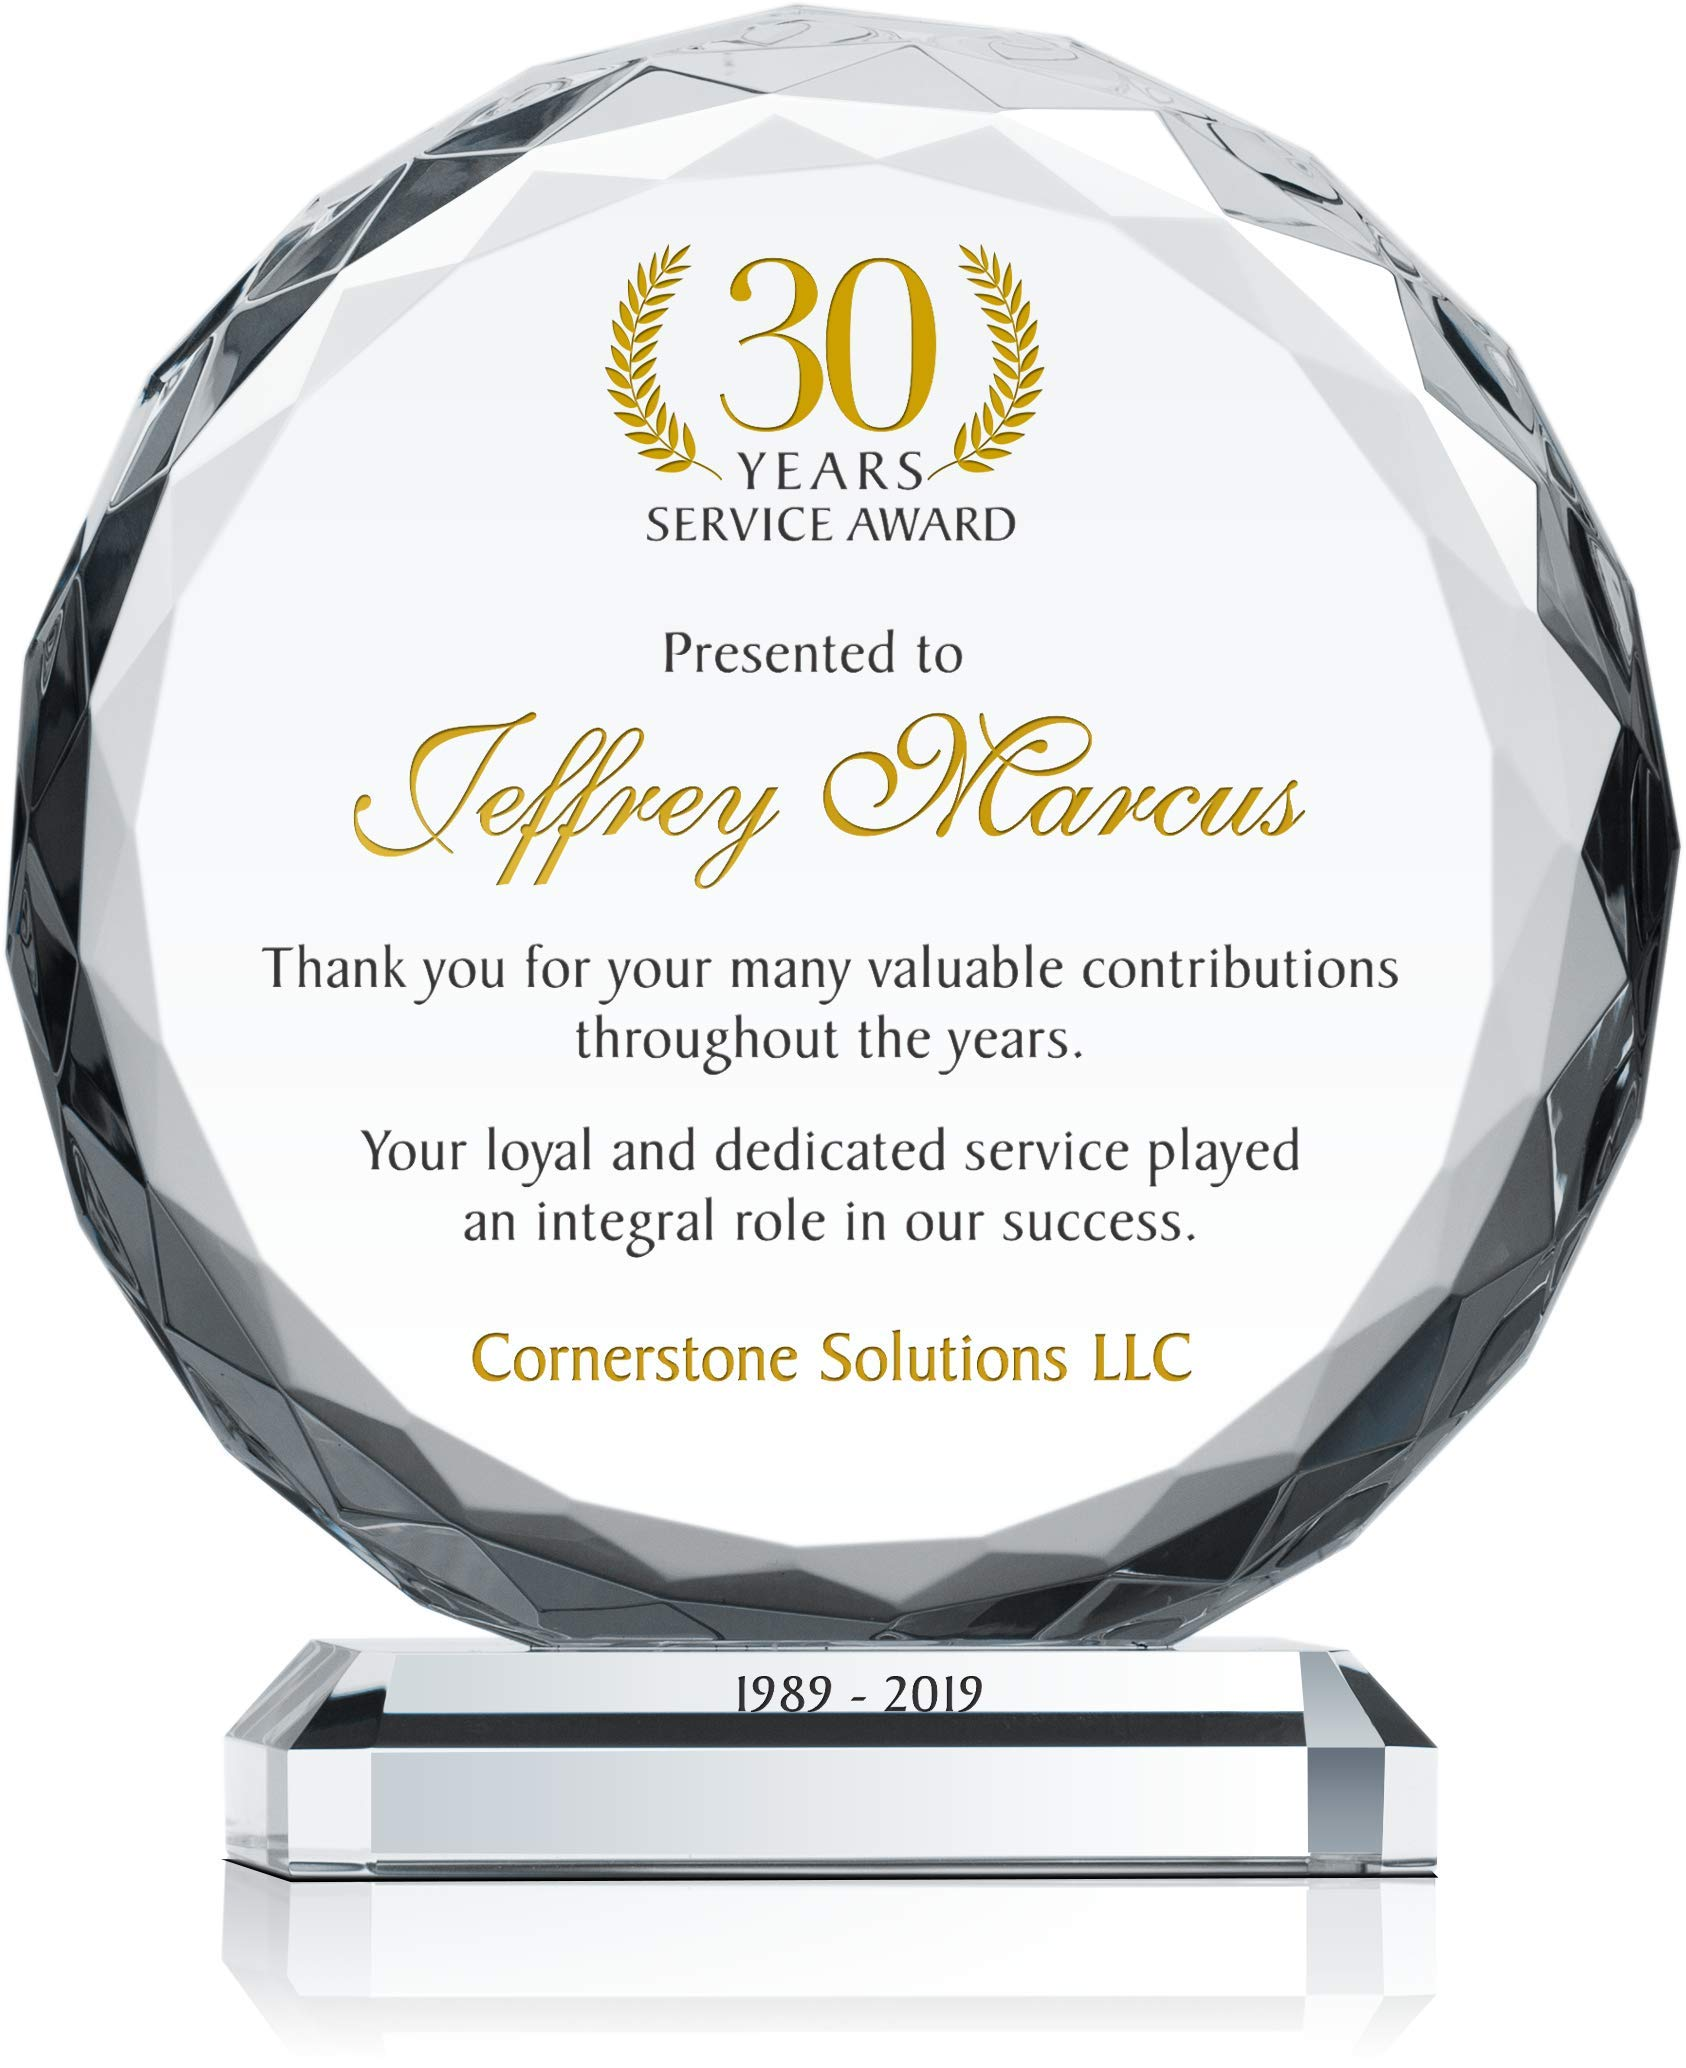 Personalized Crystal Sunflower Employee Service Recognition Award Plaque, Customized with Employee & Company Name, Years of Service, Unique 5, 10, 15, 20, 30 Years Service Award Trophy (L - 8'') by Crystal Central